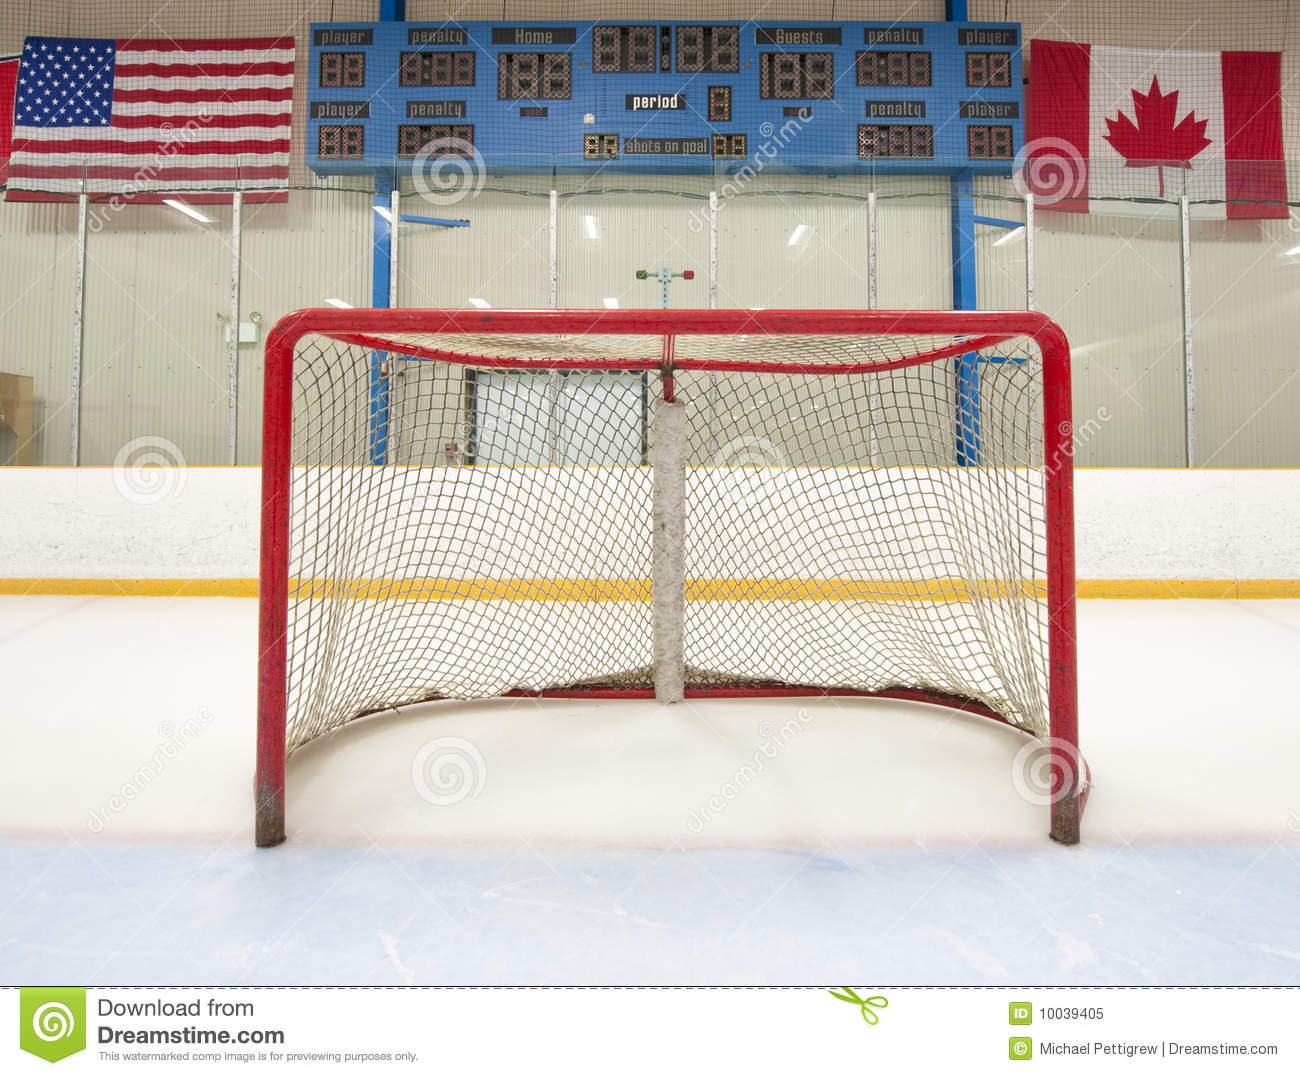 Hockey Net With Scoreboard Royalty Free Stock Photo - Image: 10039405